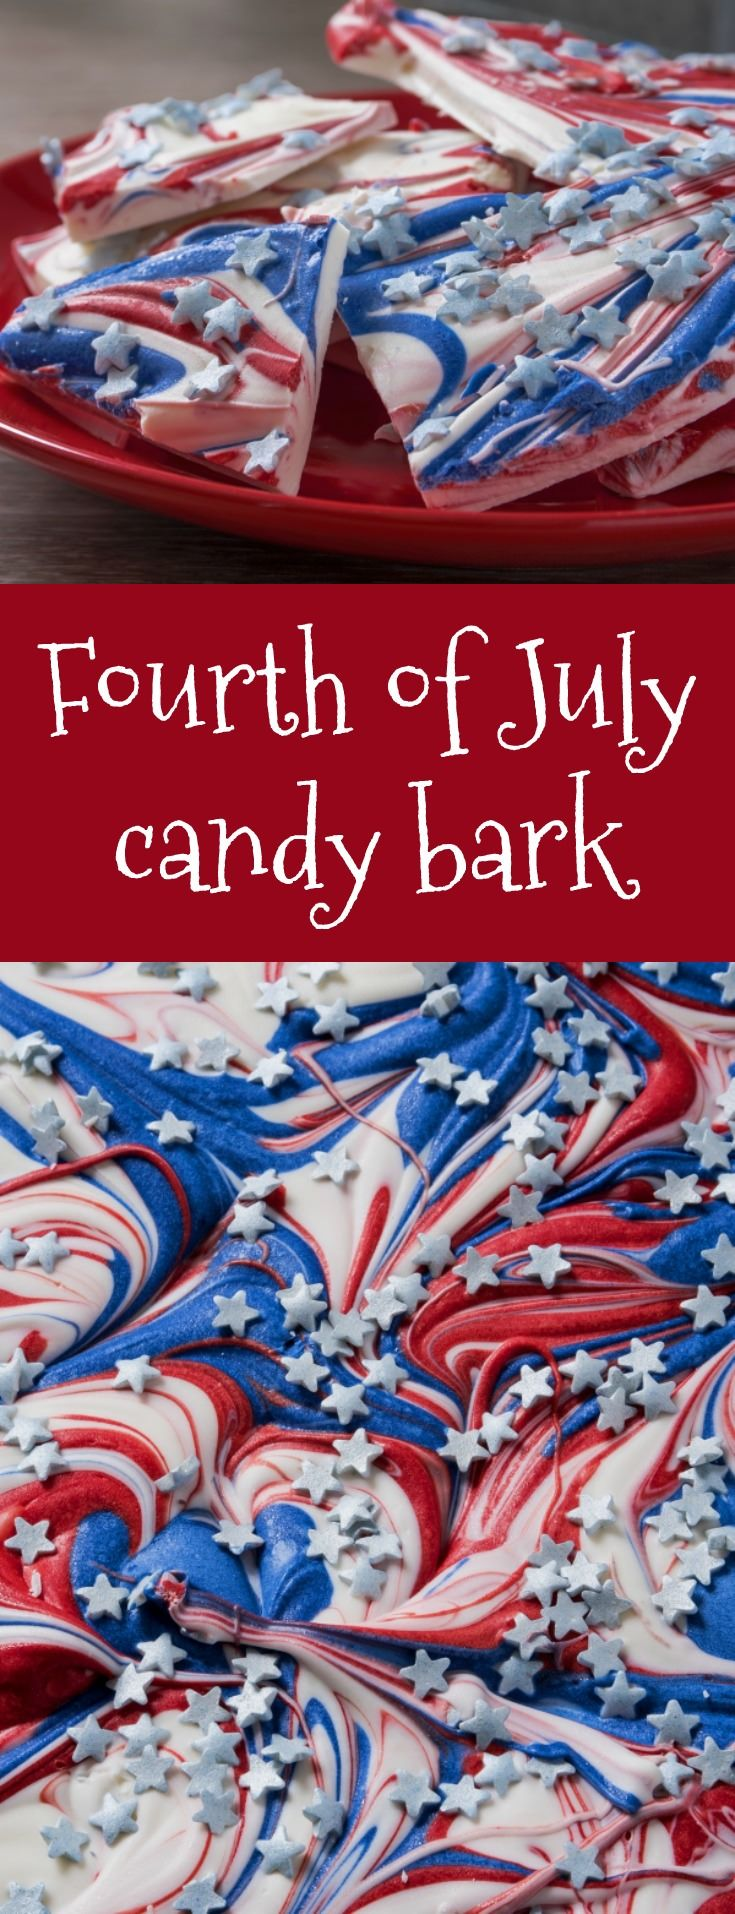 We Can't Stop Craving This EASY Fourth of July Candy Bark Recipe!